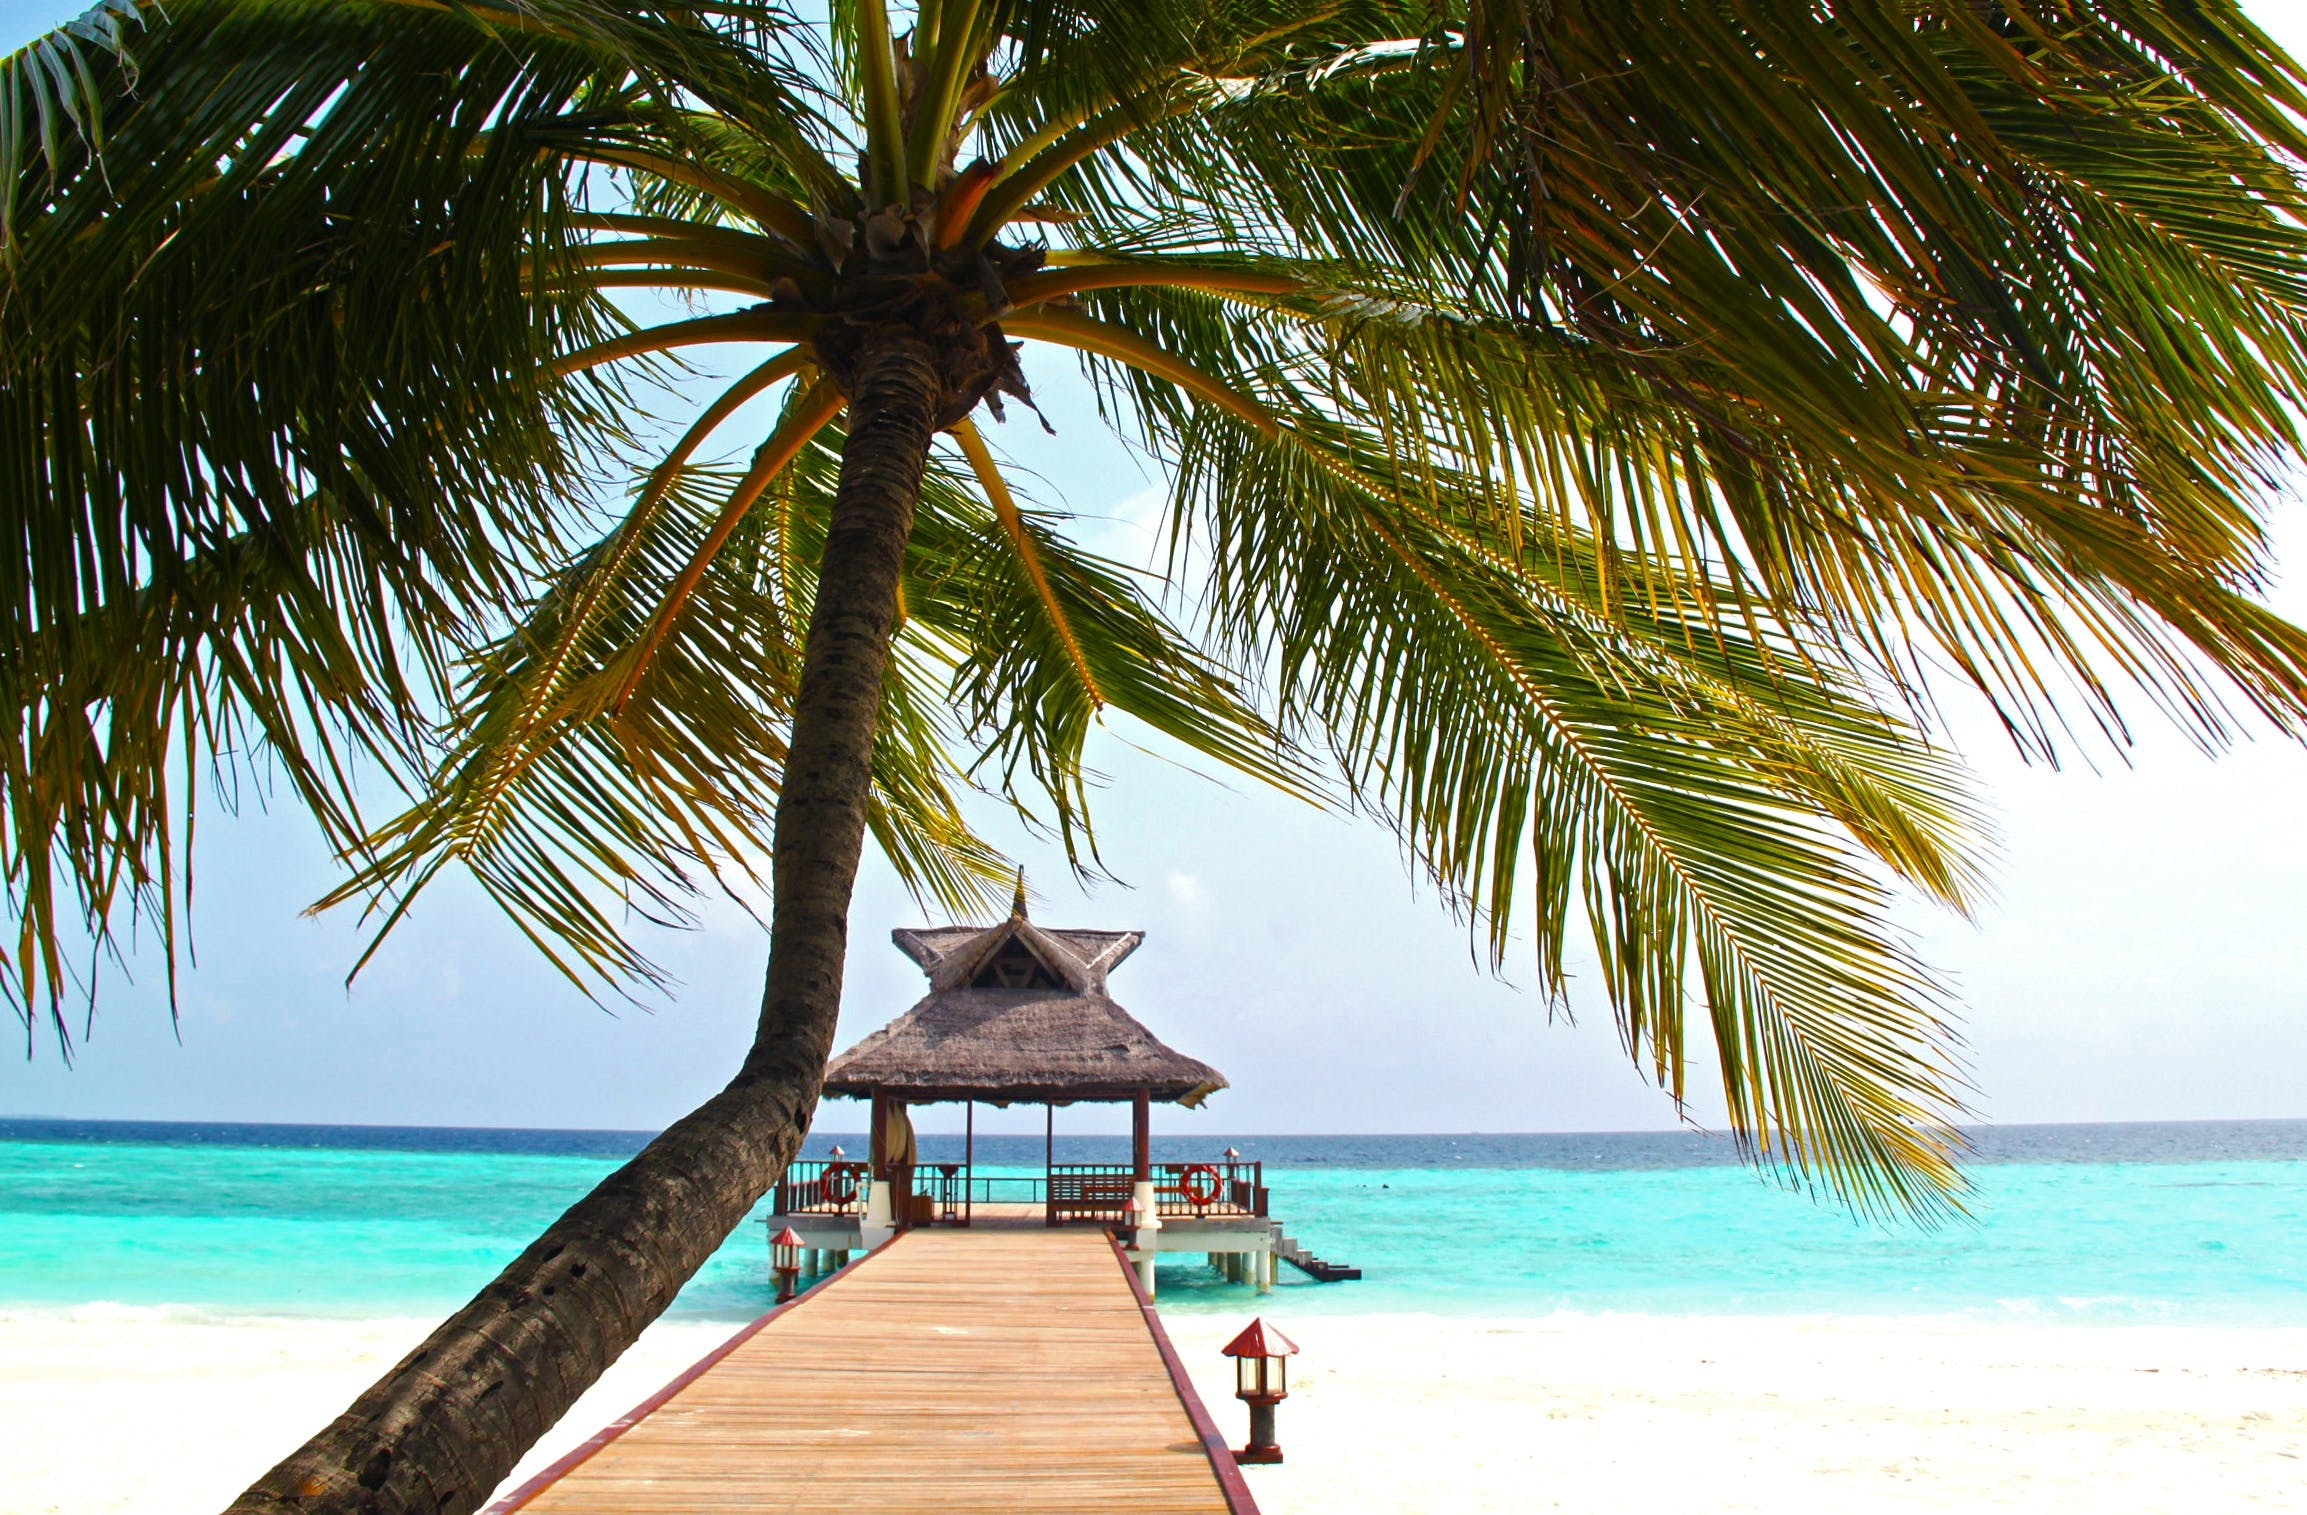 Beach Dock With Palm Tree